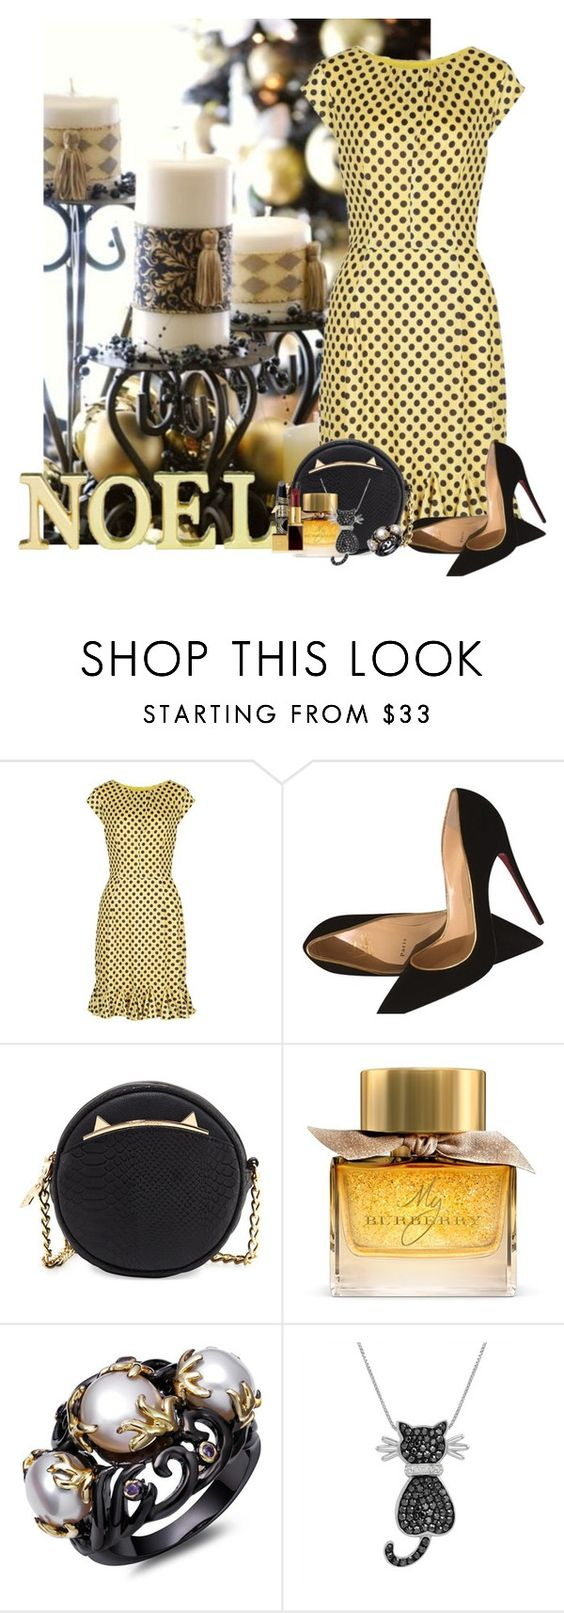 """""""Christmas Candles and Cats"""" by stephaniefb ❤ liked on Polyvore featuring Christian Louboutin, Betsey Johnson, Burberry, Amanda Rose Collection, Laura Ashley and Max Factor"""